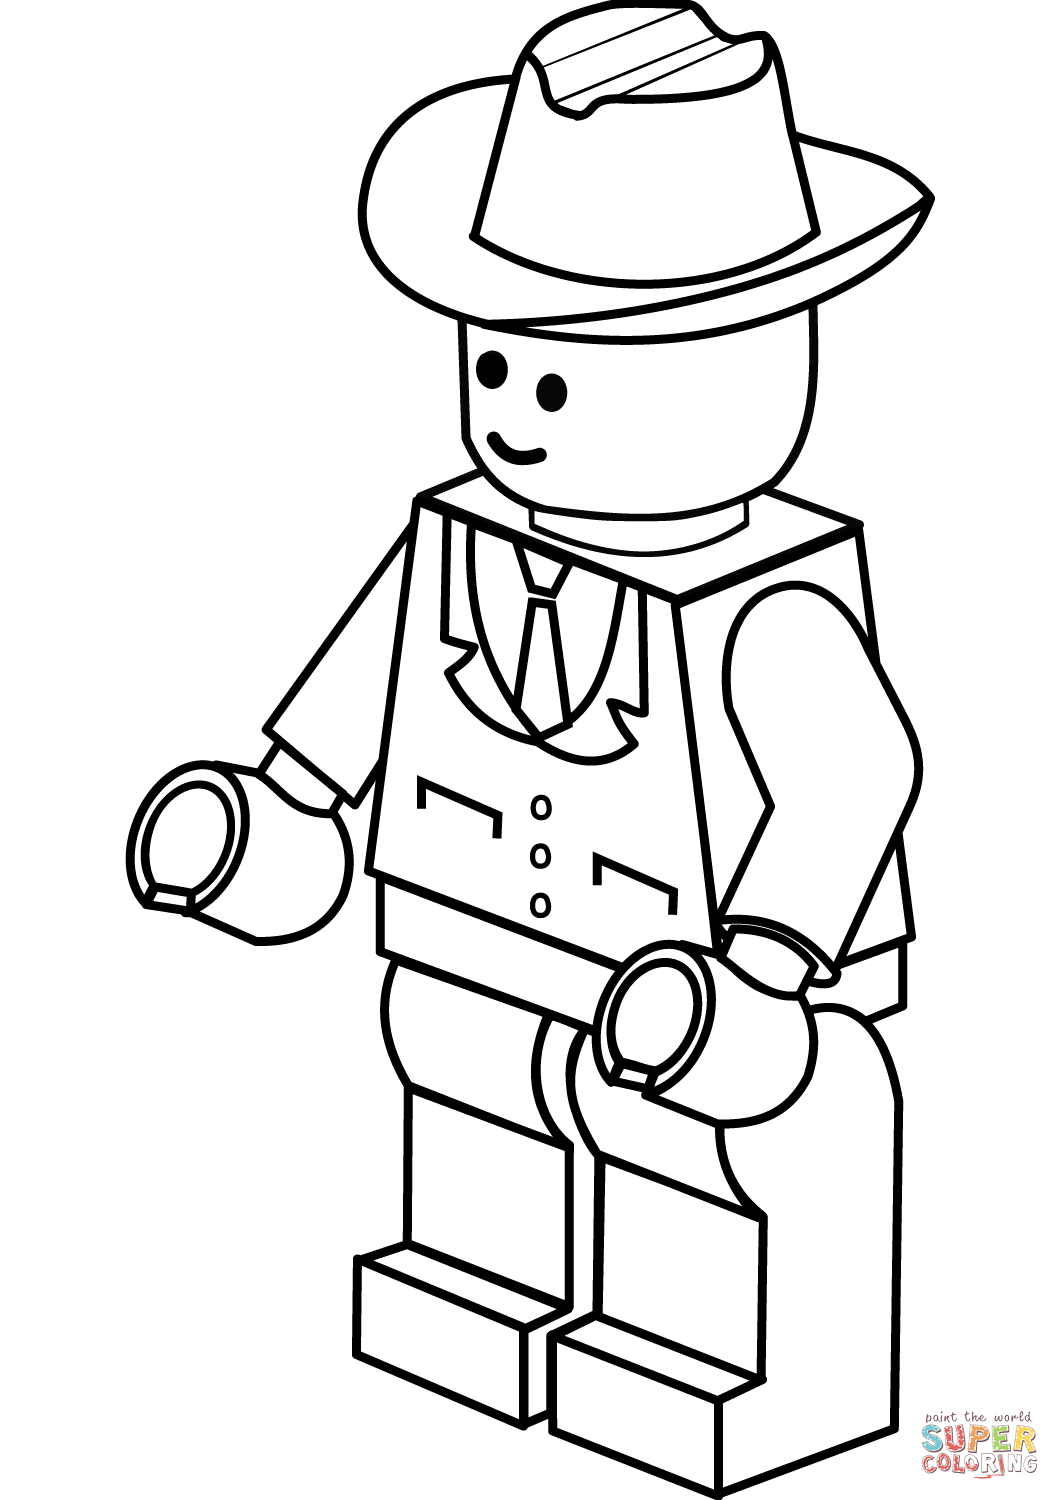 coloring page lego lego ninjago coloring pages best coloring pages for kids lego page coloring